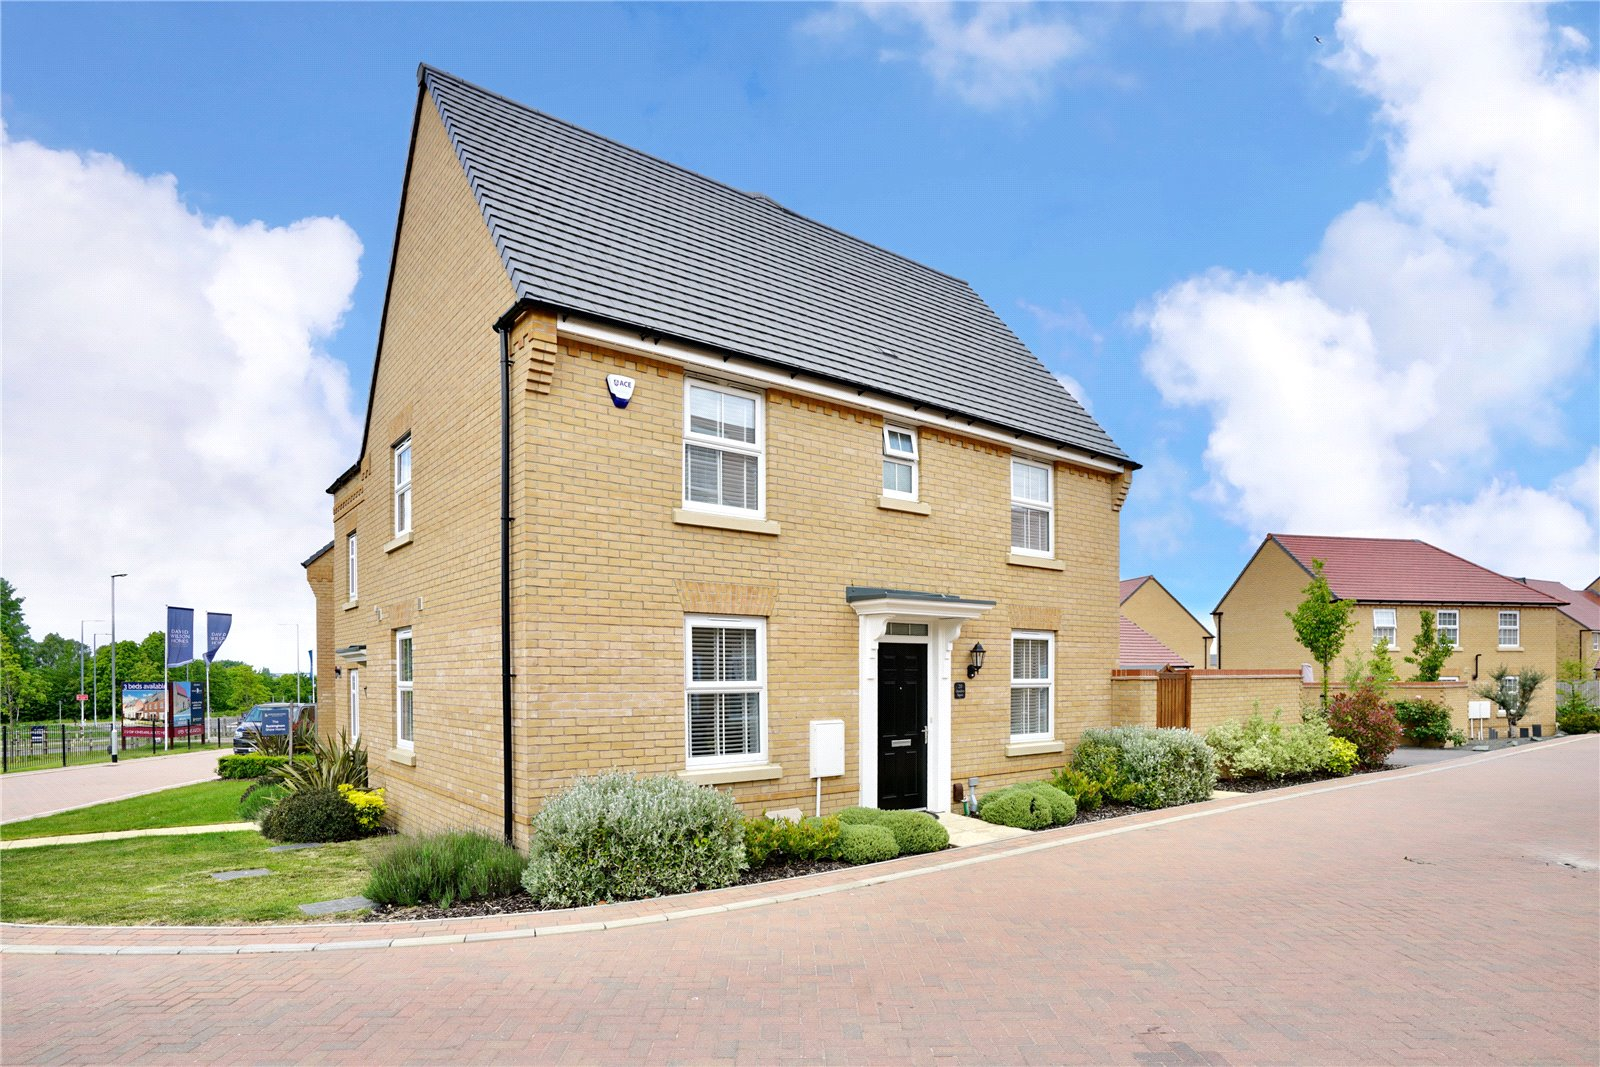 3 bed house for sale in Godmanchester, PE29 2NF, PE29